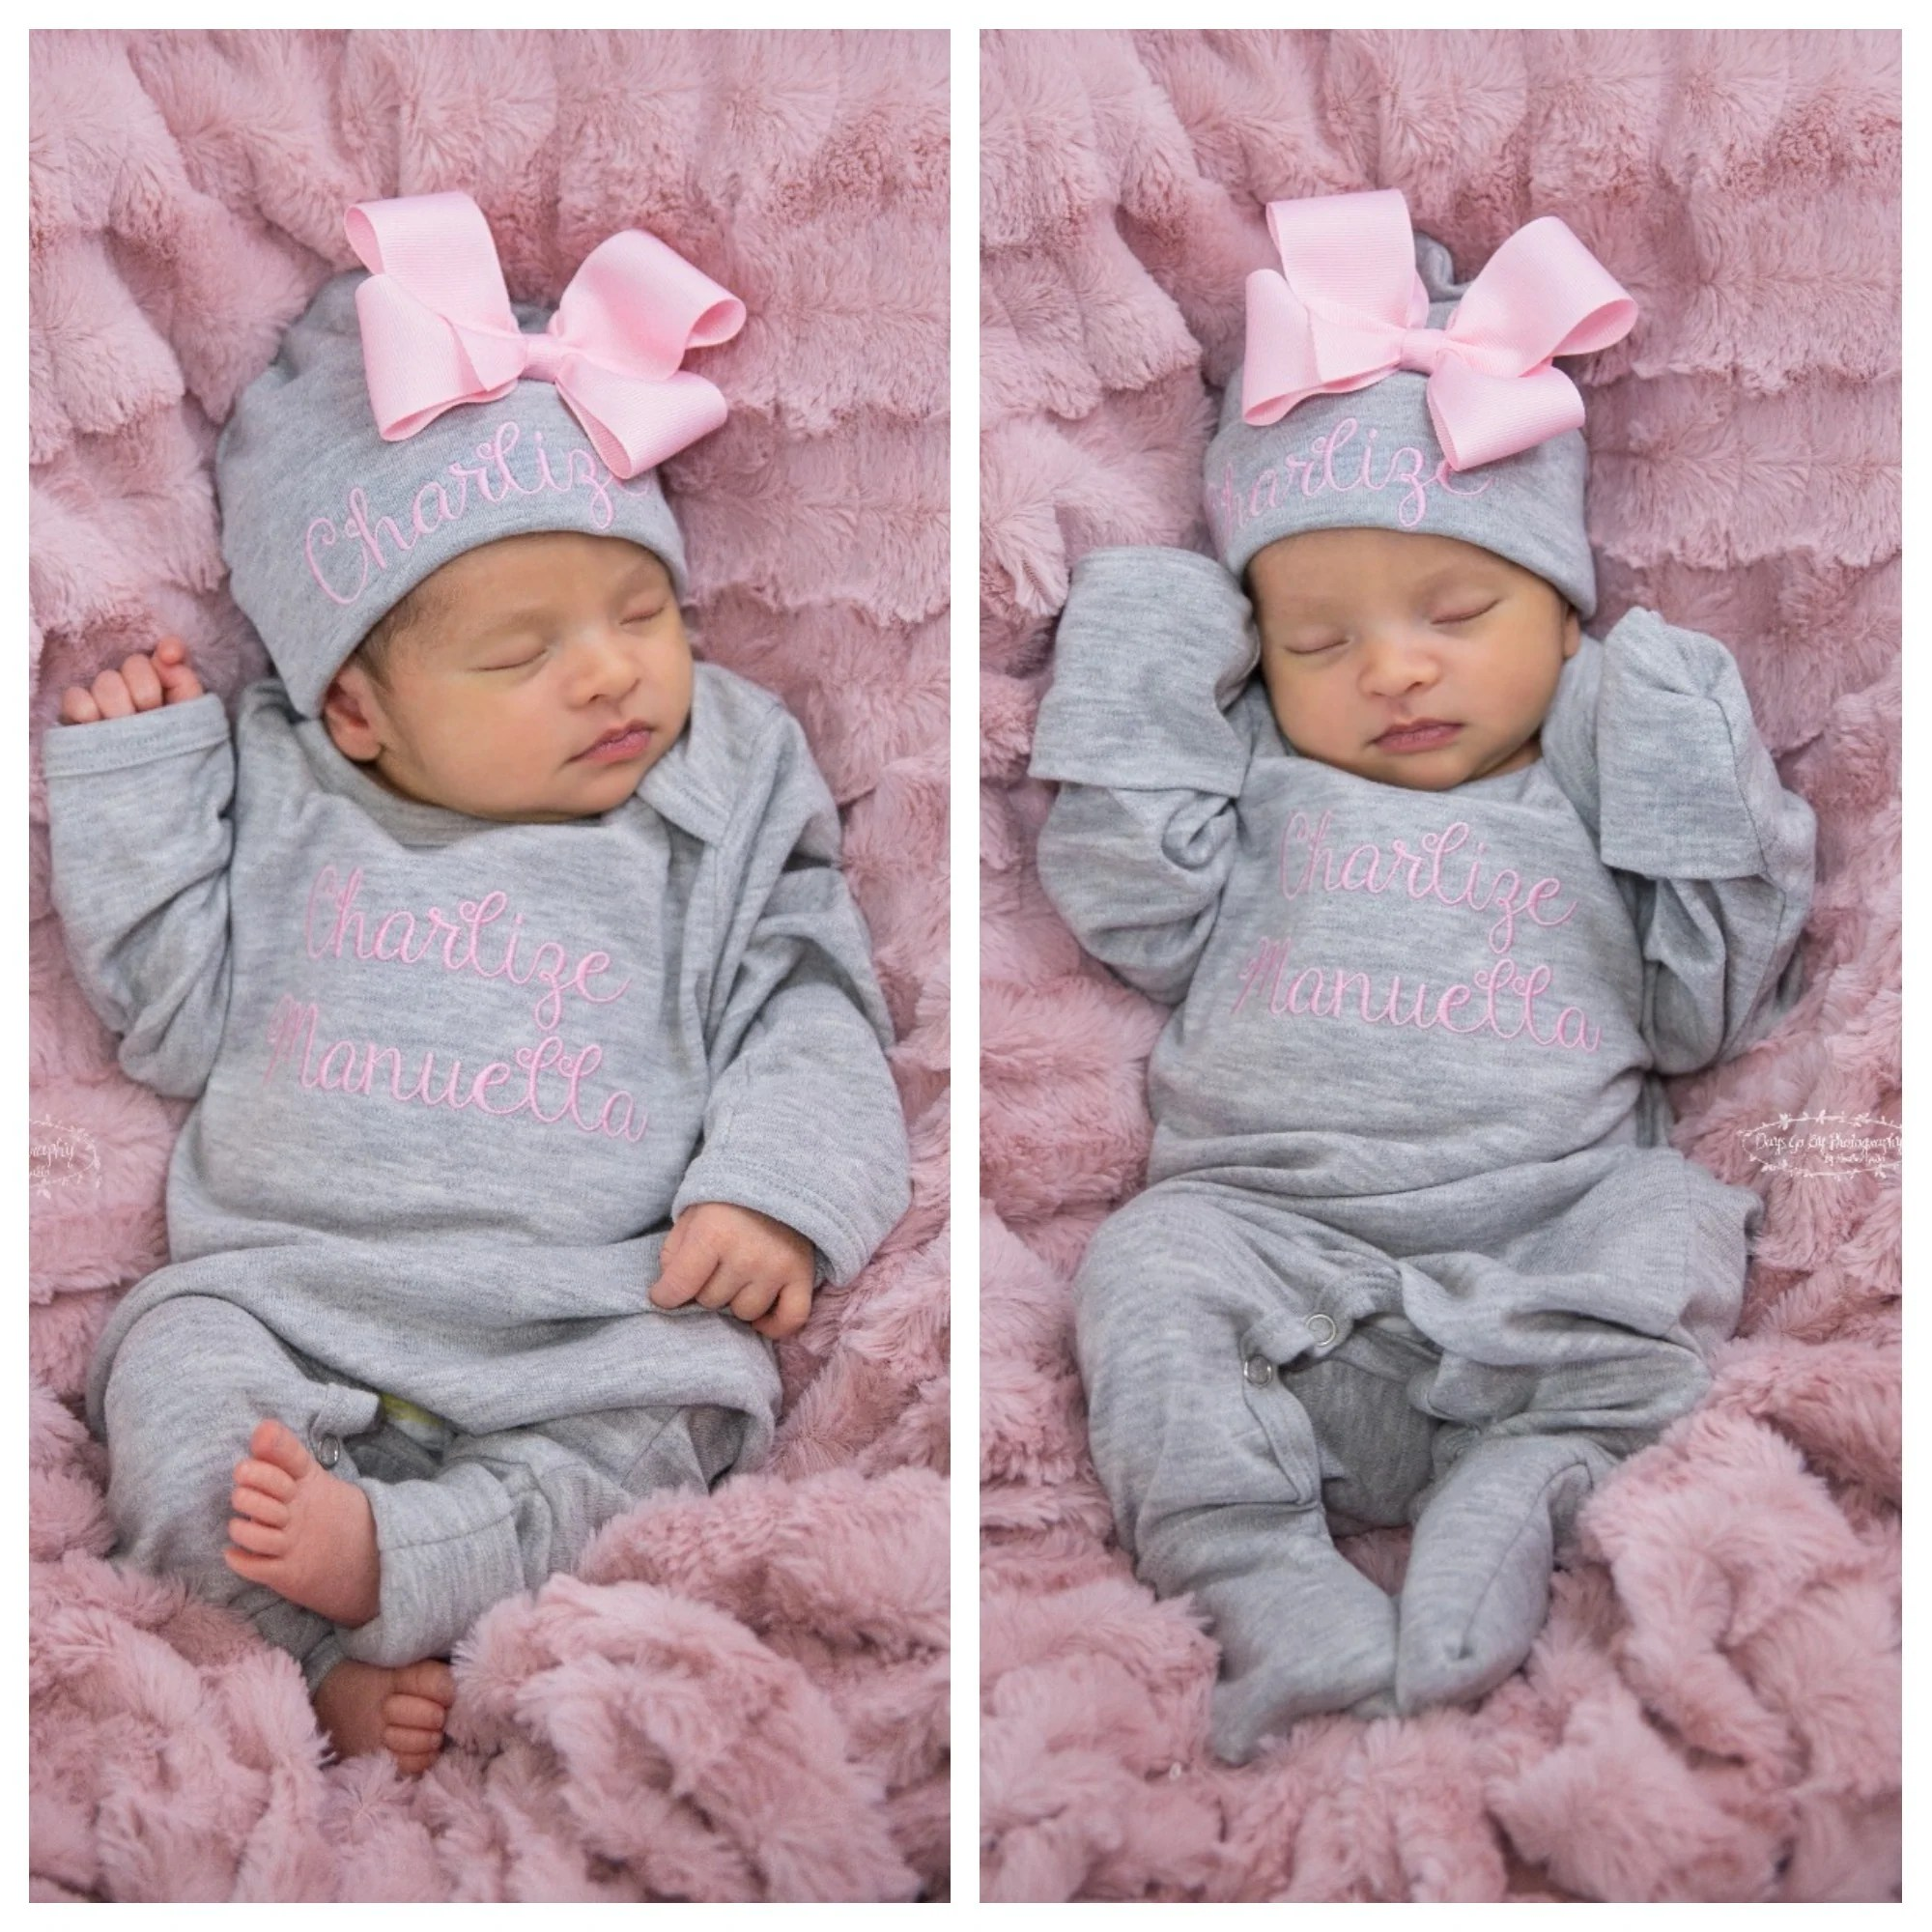 Newborn Infant Outfits Pink And Gray Newborn Baby Girl Coming Home Outfit With Bows